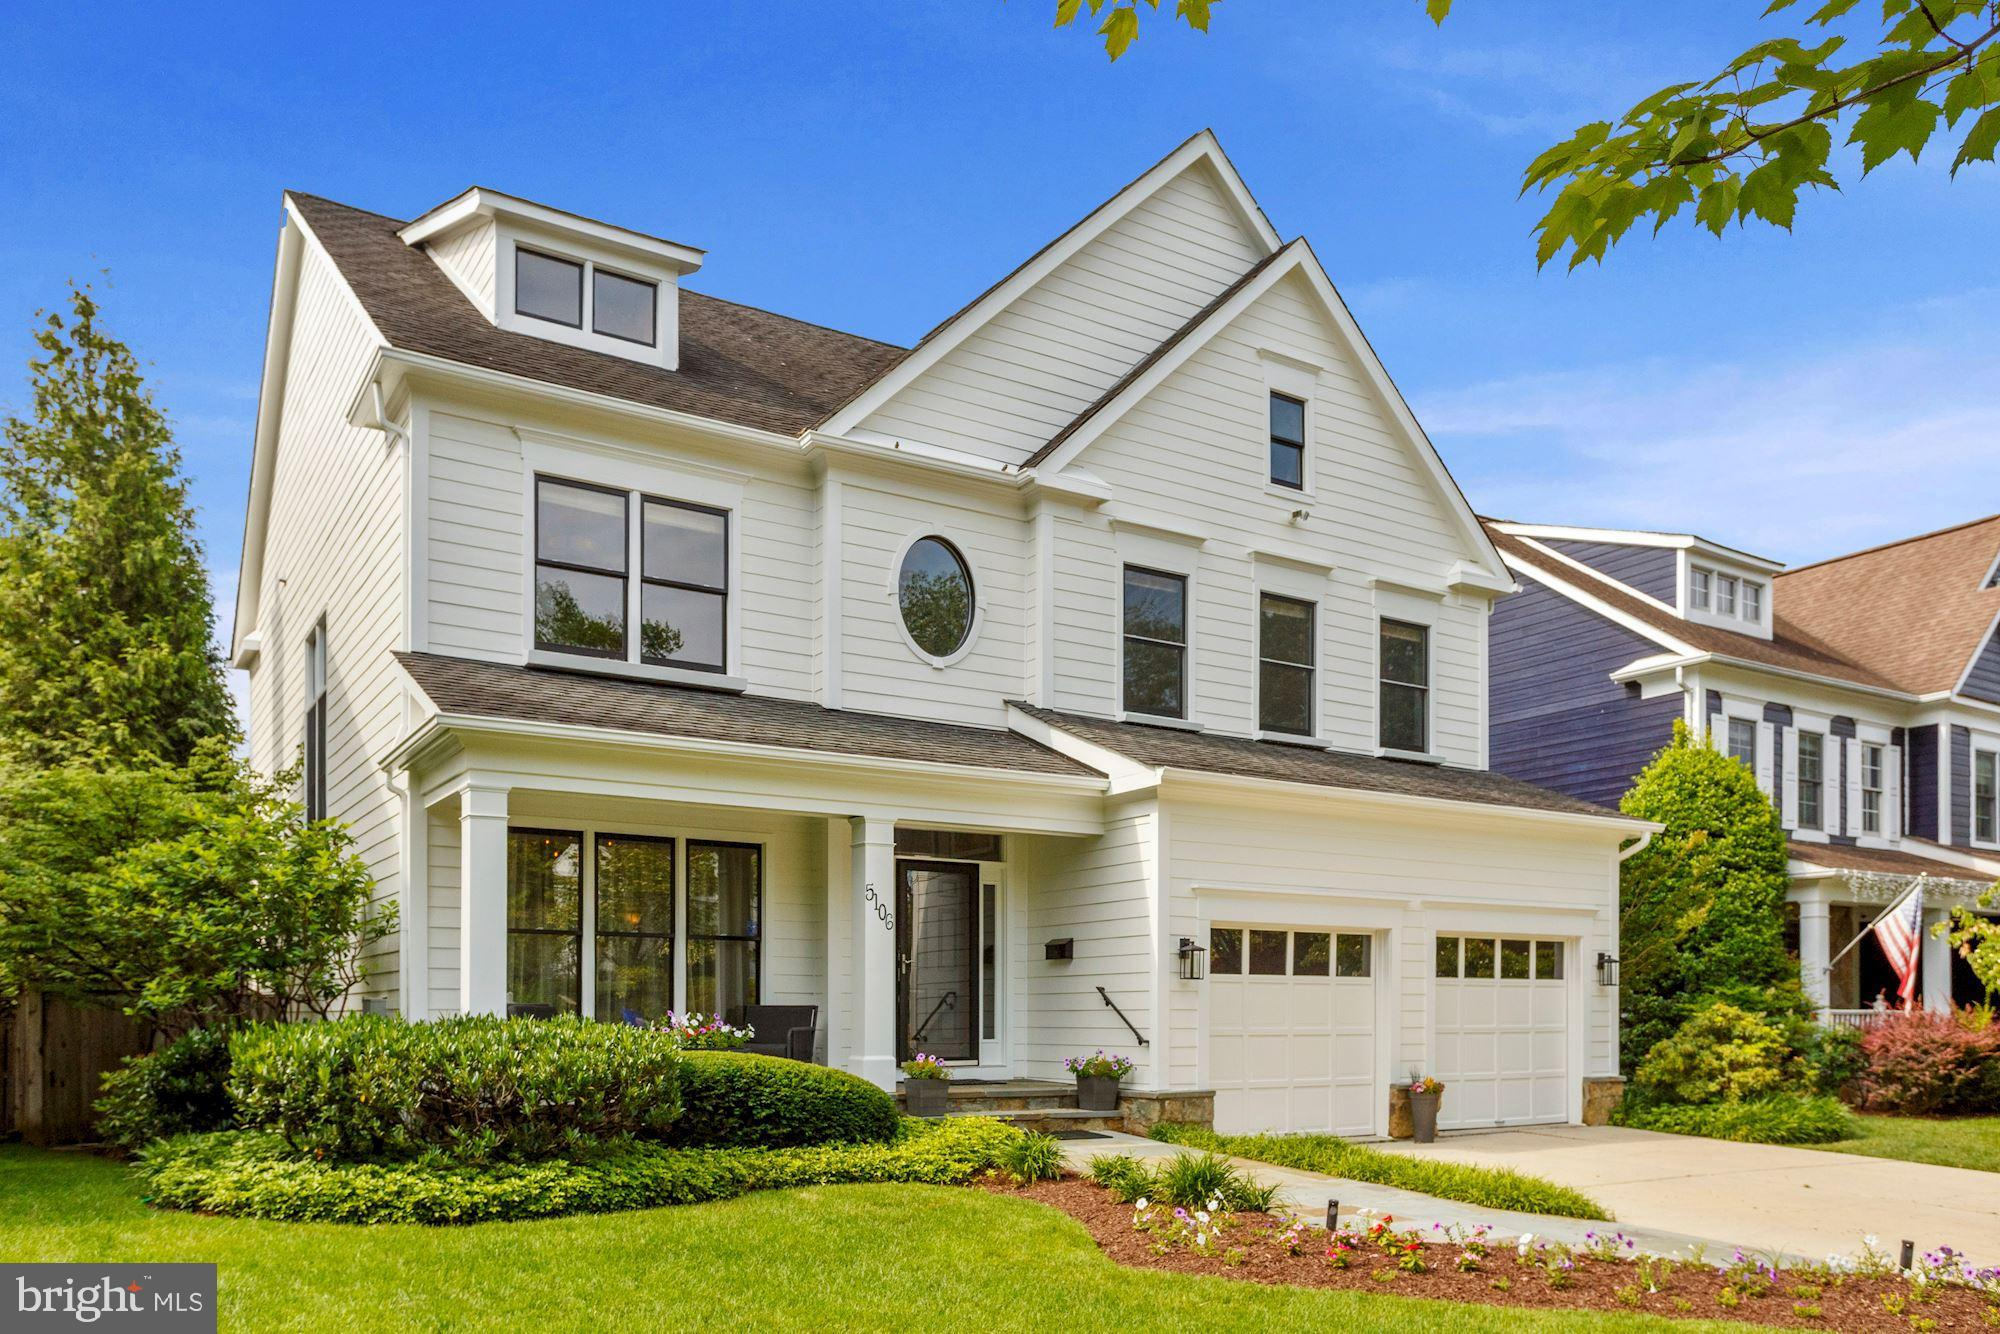 LOCATION, LOCATION, LOCATION! Gorgeous 5 bedroom, 4 1/2 bath home by award-winning builder, Laurence